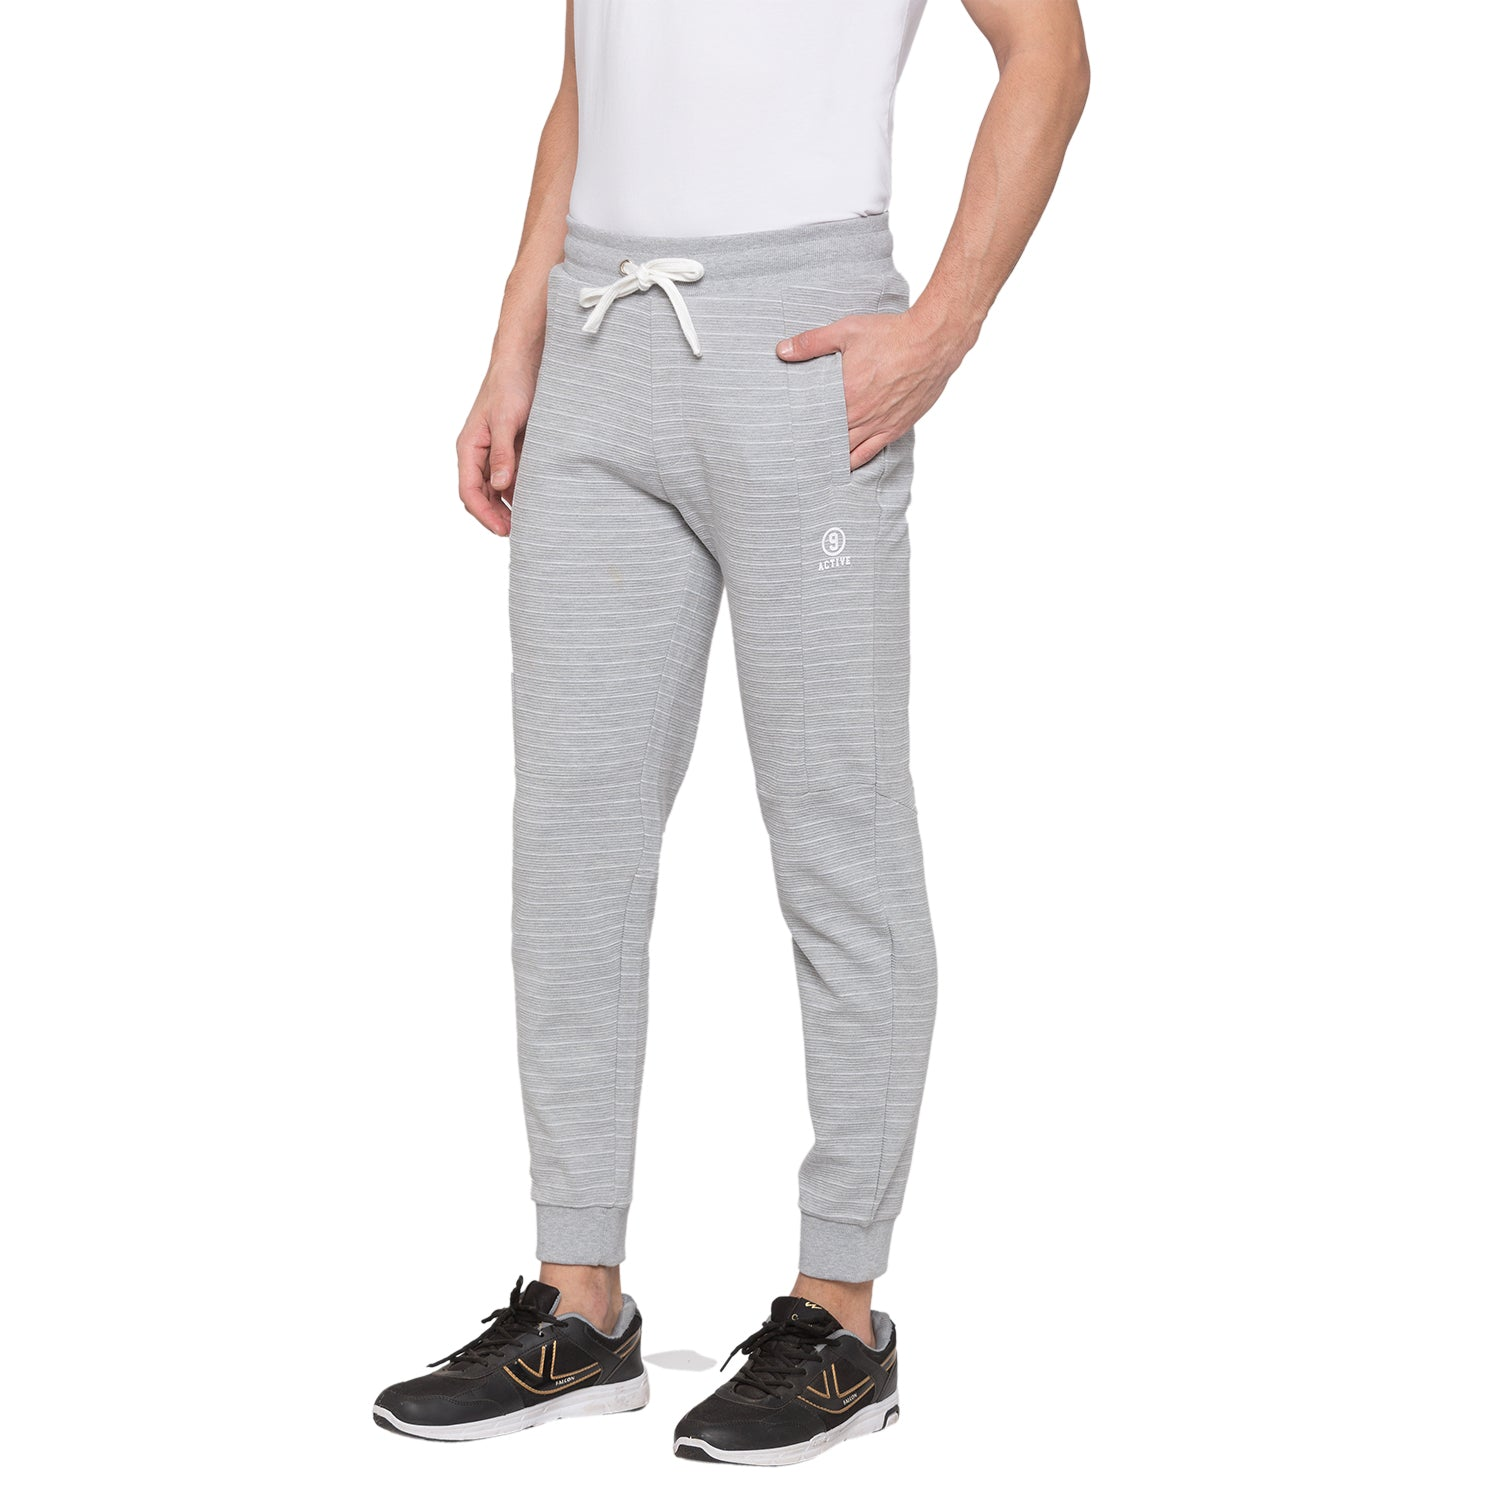 Globus Grey Melange Striped Joggers2